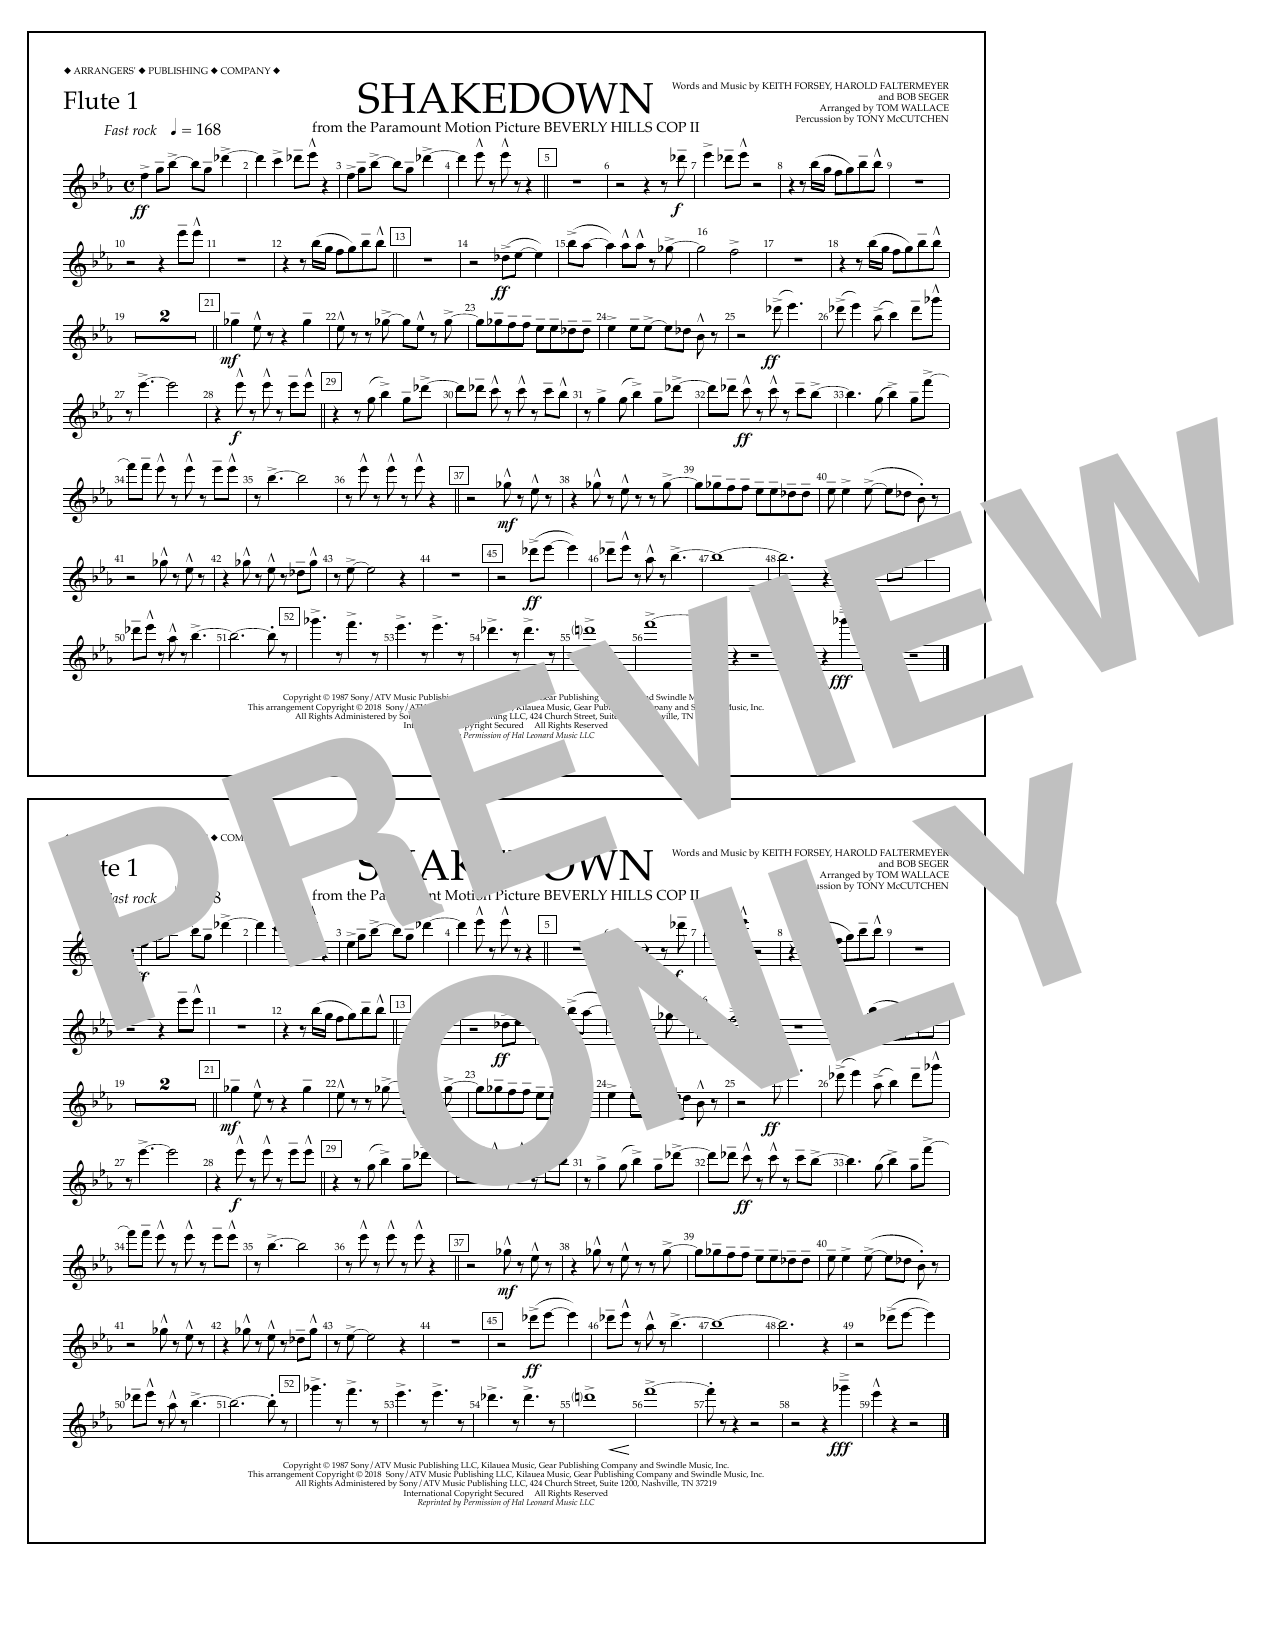 Tom Wallace Shakedown - Flute 1 sheet music notes and chords. Download Printable PDF.